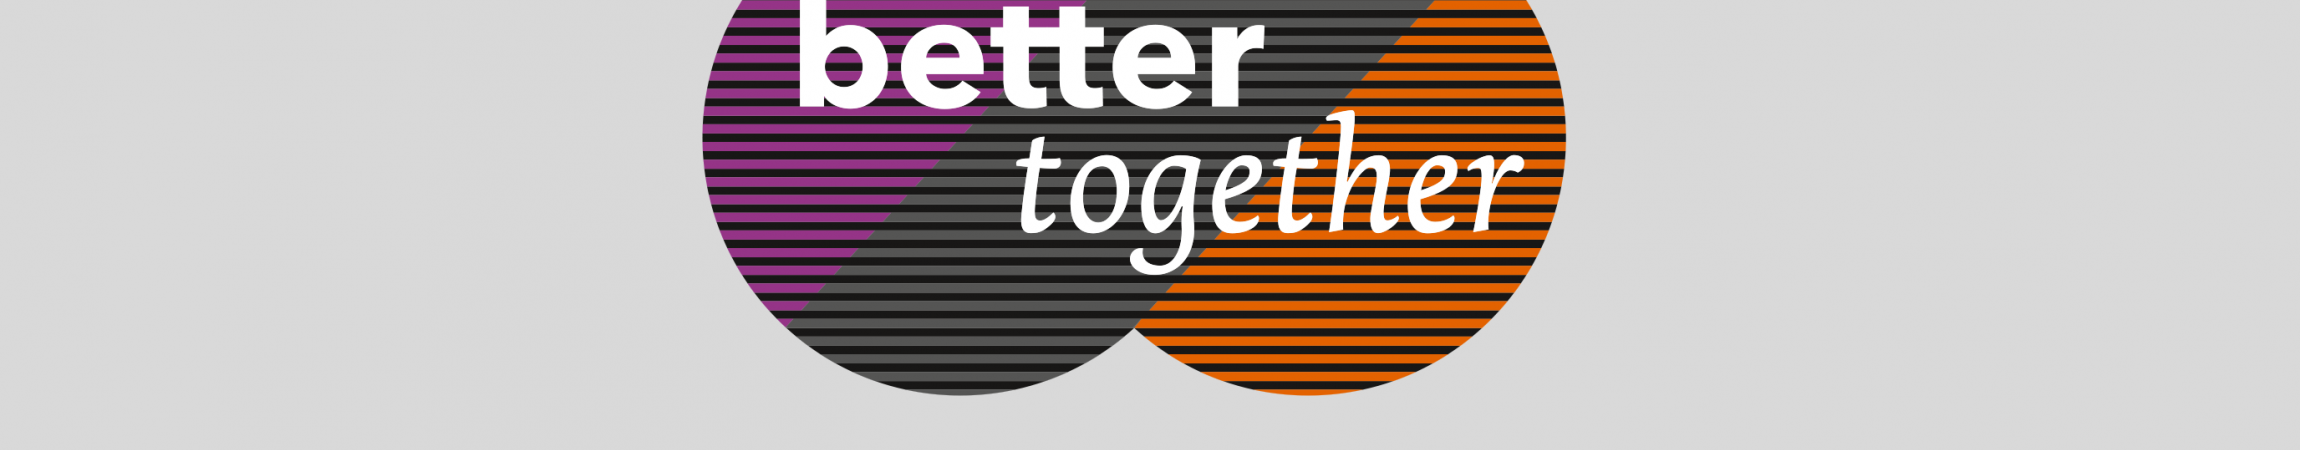 Better Together: Cocon En Decostayle